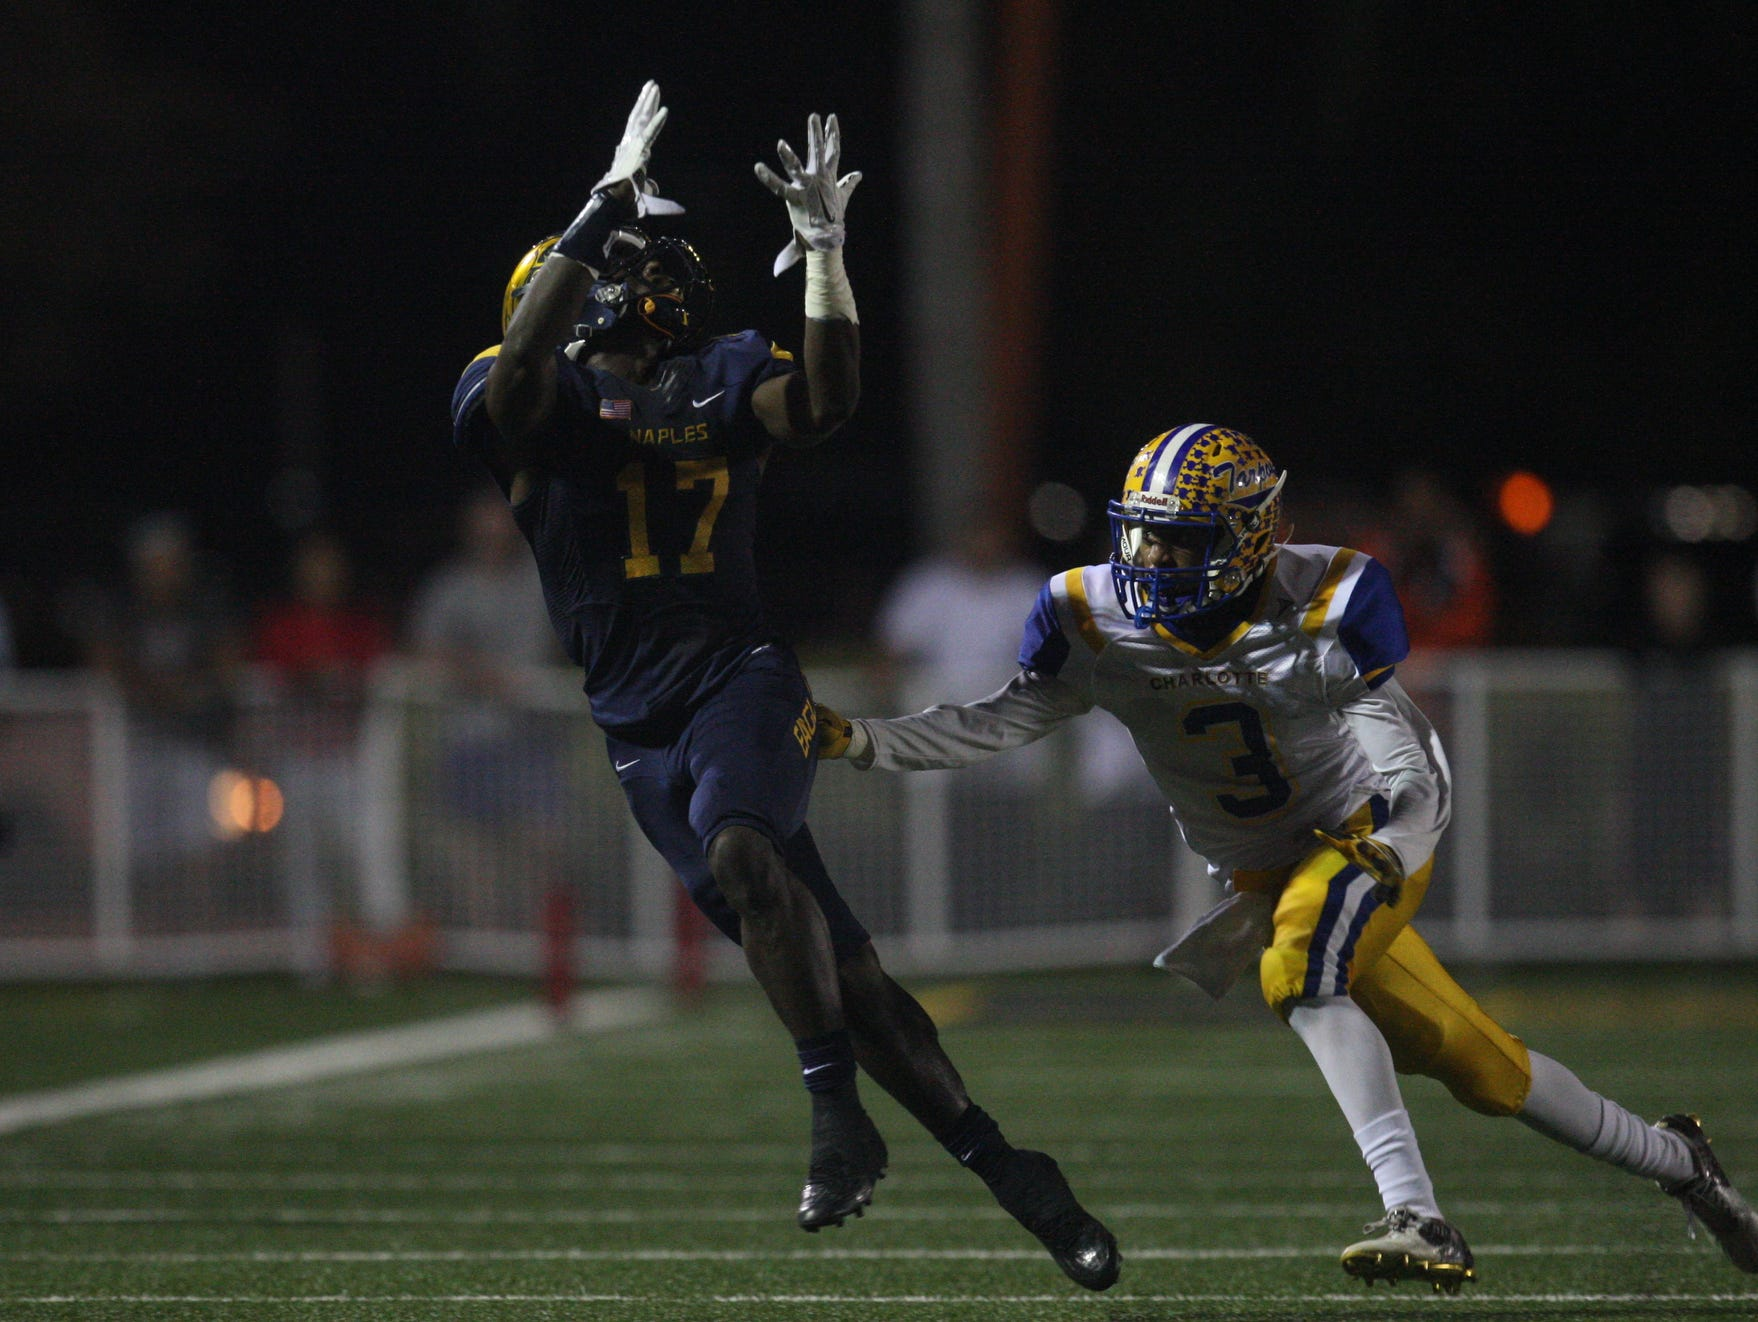 Naples High receiver Tyler Byrd catches a pass during the Golden Eagles 35-0 win over Charlotte in the Region 6A-3 final Friday at Staver Field.